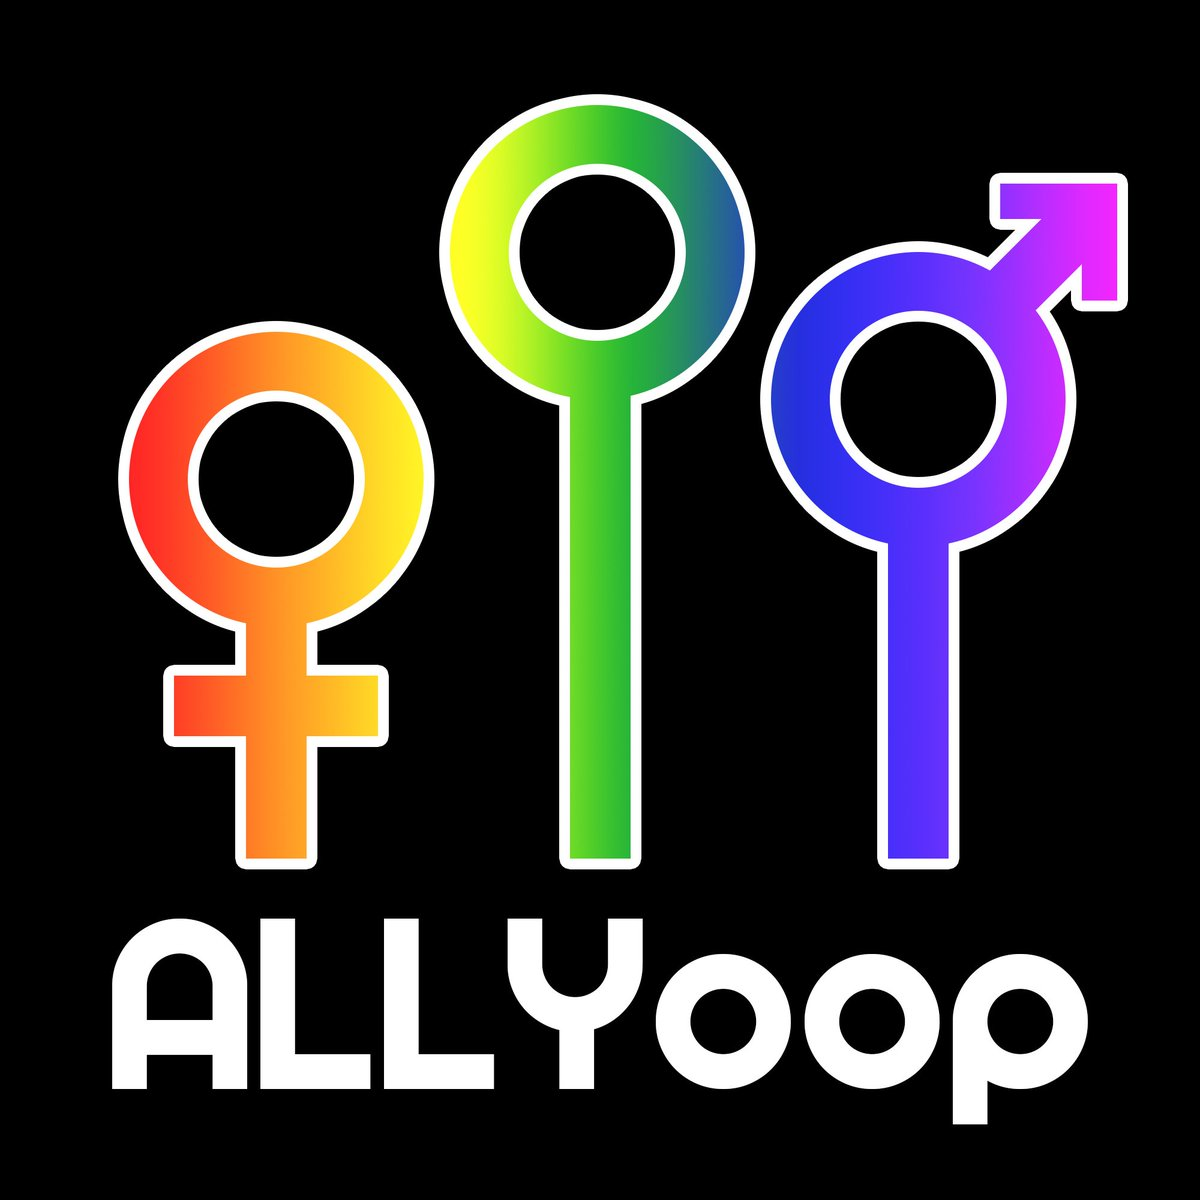 Support #allyship in #quidditch. Campaign details coming soon. Like & RT. (Proceeds to @AthleteAlly) #LGBT #ALLYoop https://t.co/0Yh8WucCM2